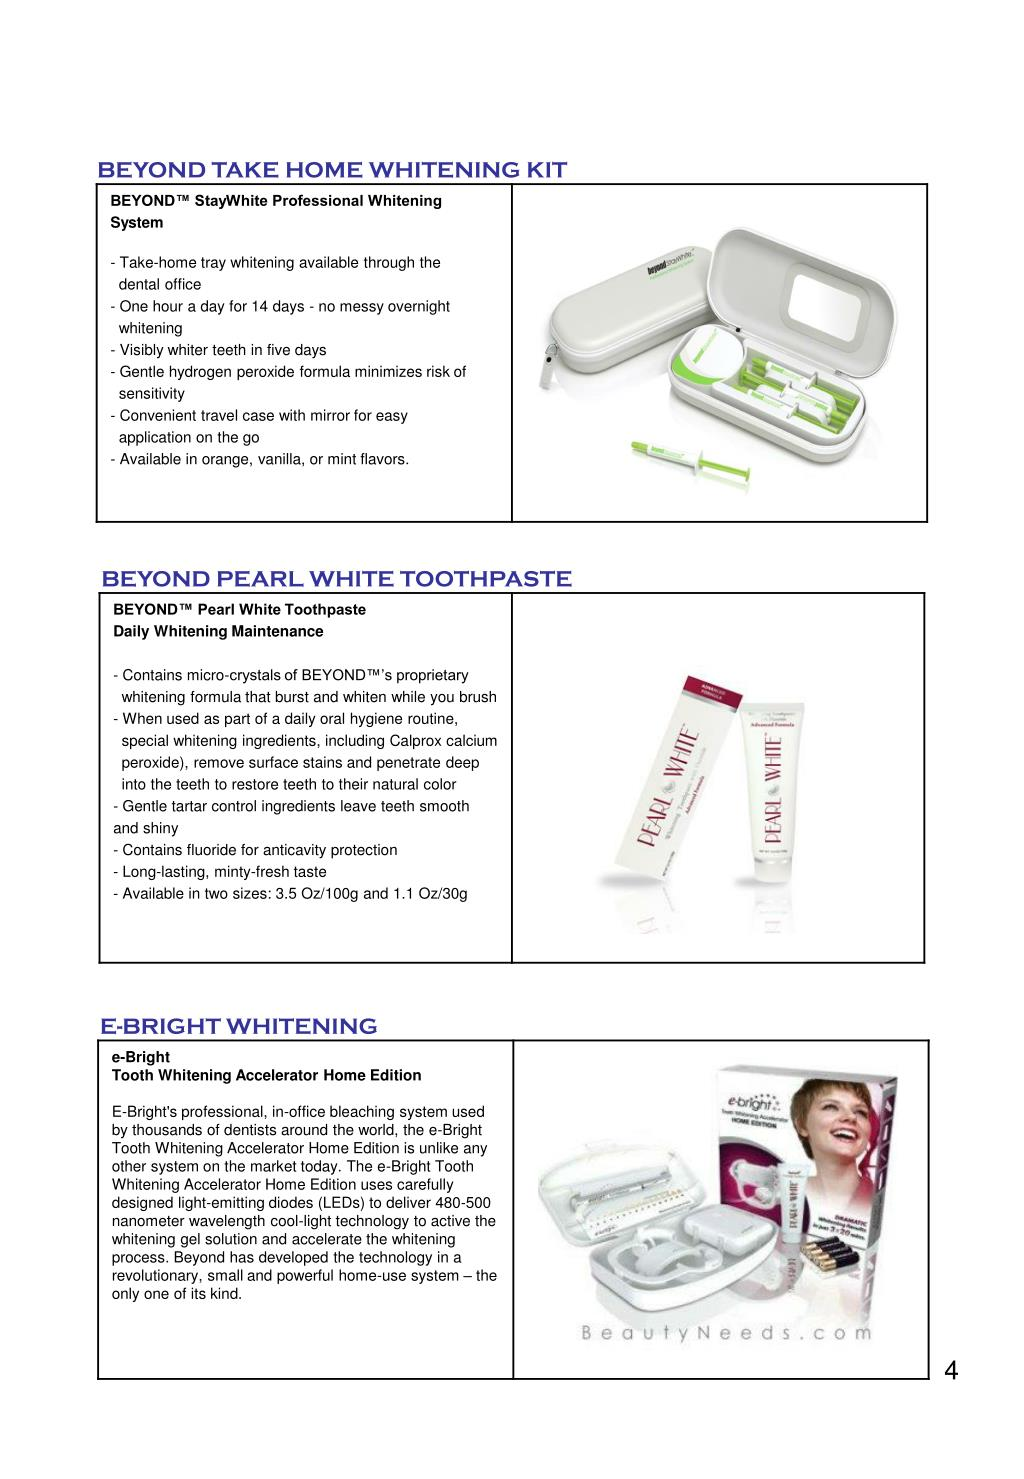 BEYOND TAKE HOME WHITENING KIT